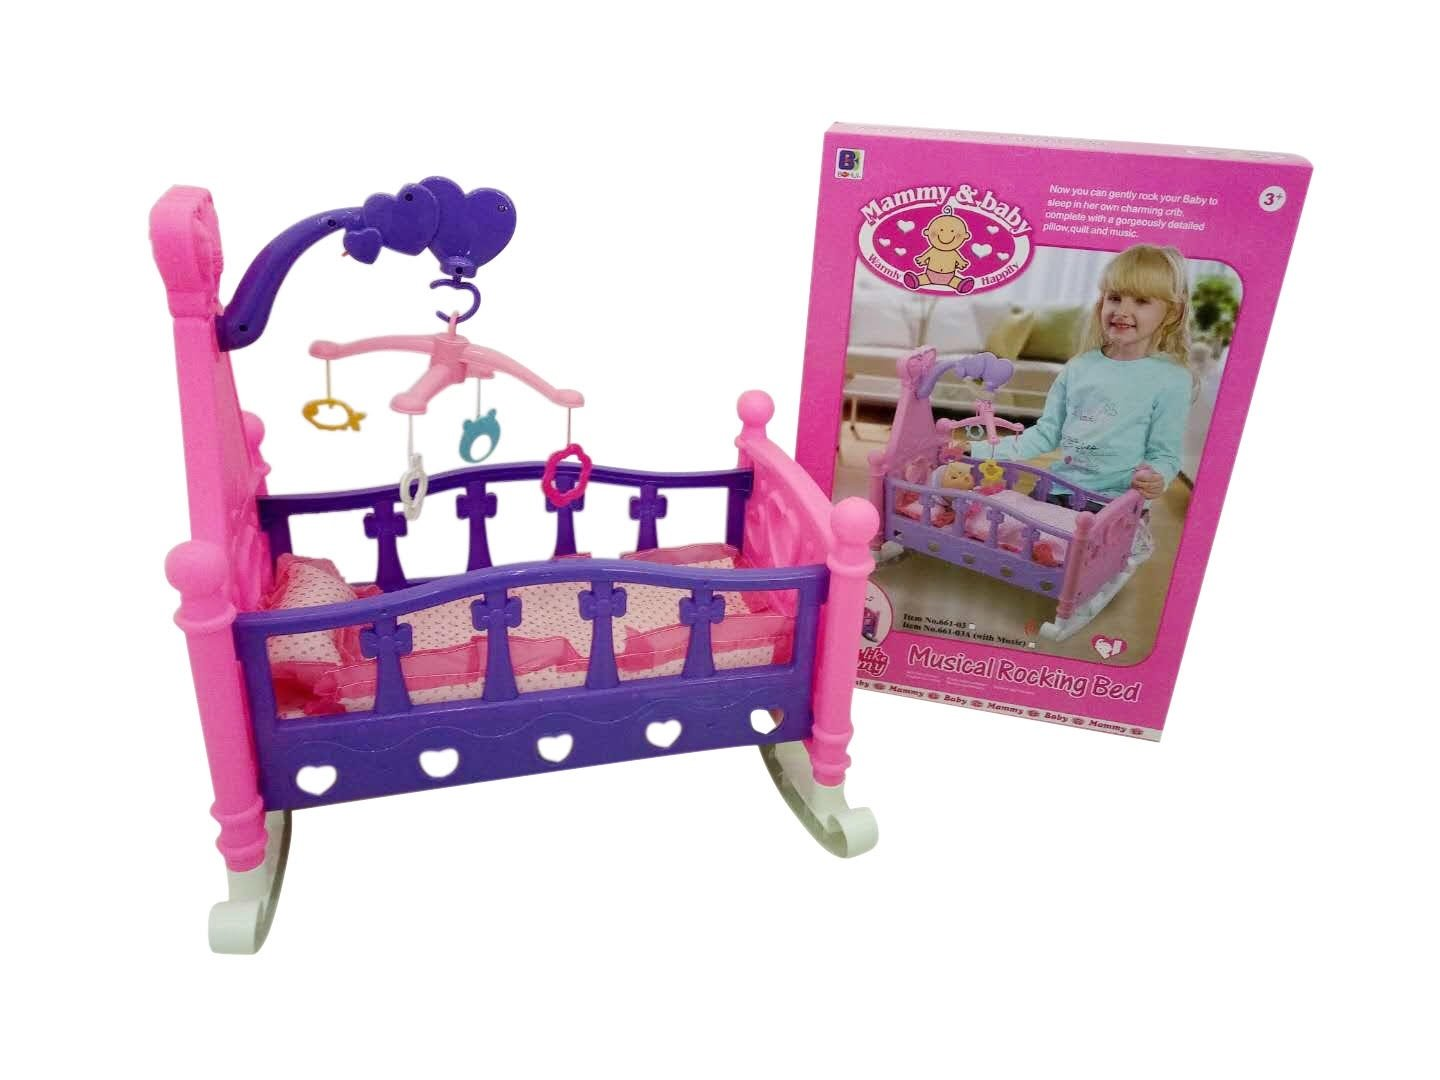 Allkindathings Children Mommy & Baby Pretend Play Rocking Musical Cradle Bed Cot With Bedding